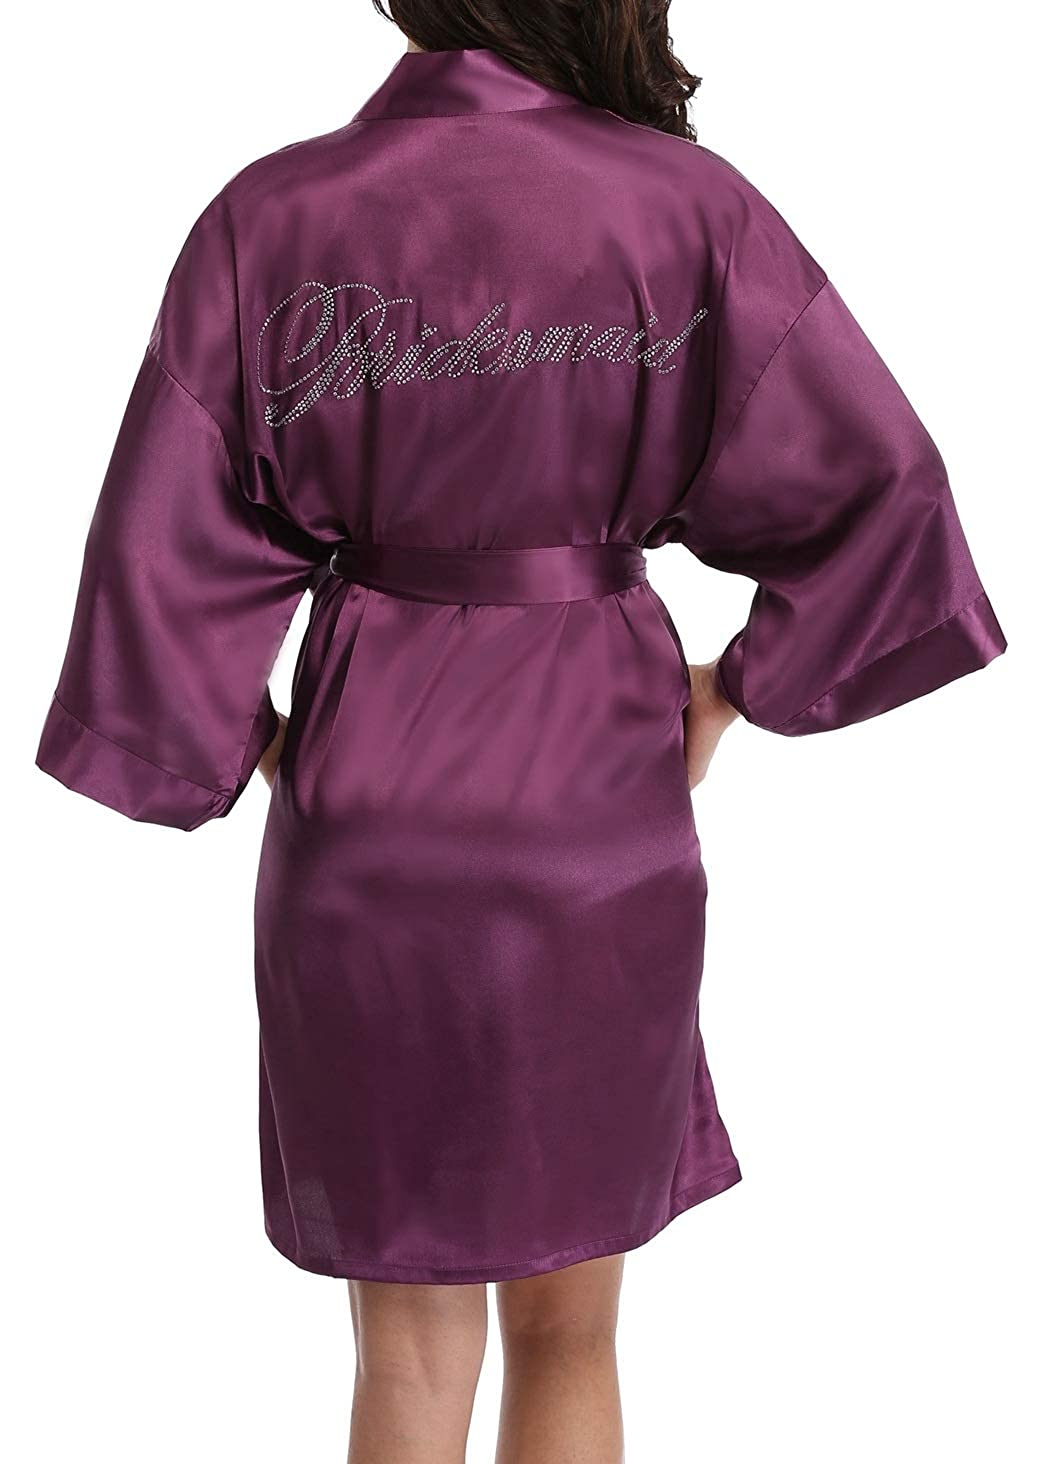 Dark Purple(bridesmaid) FADSHOW Bridal Robes Wedding Dressing Gowns with Rhinestones for Bride and Bridesmaids